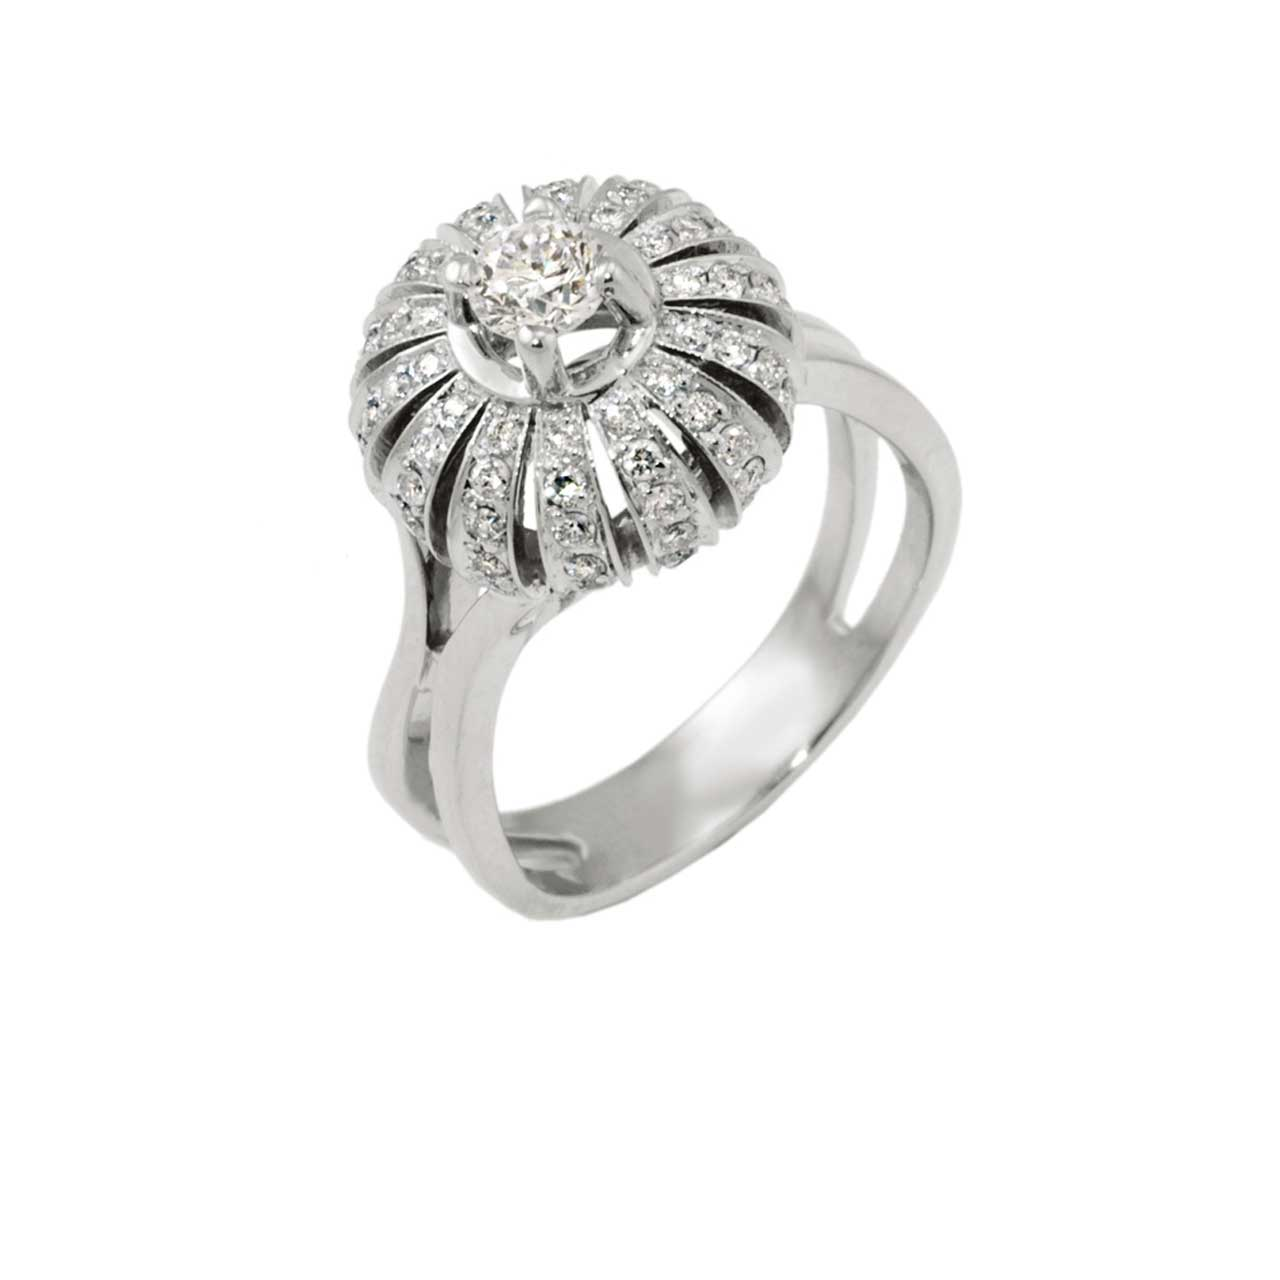 Eastern Motif Diamond Ring